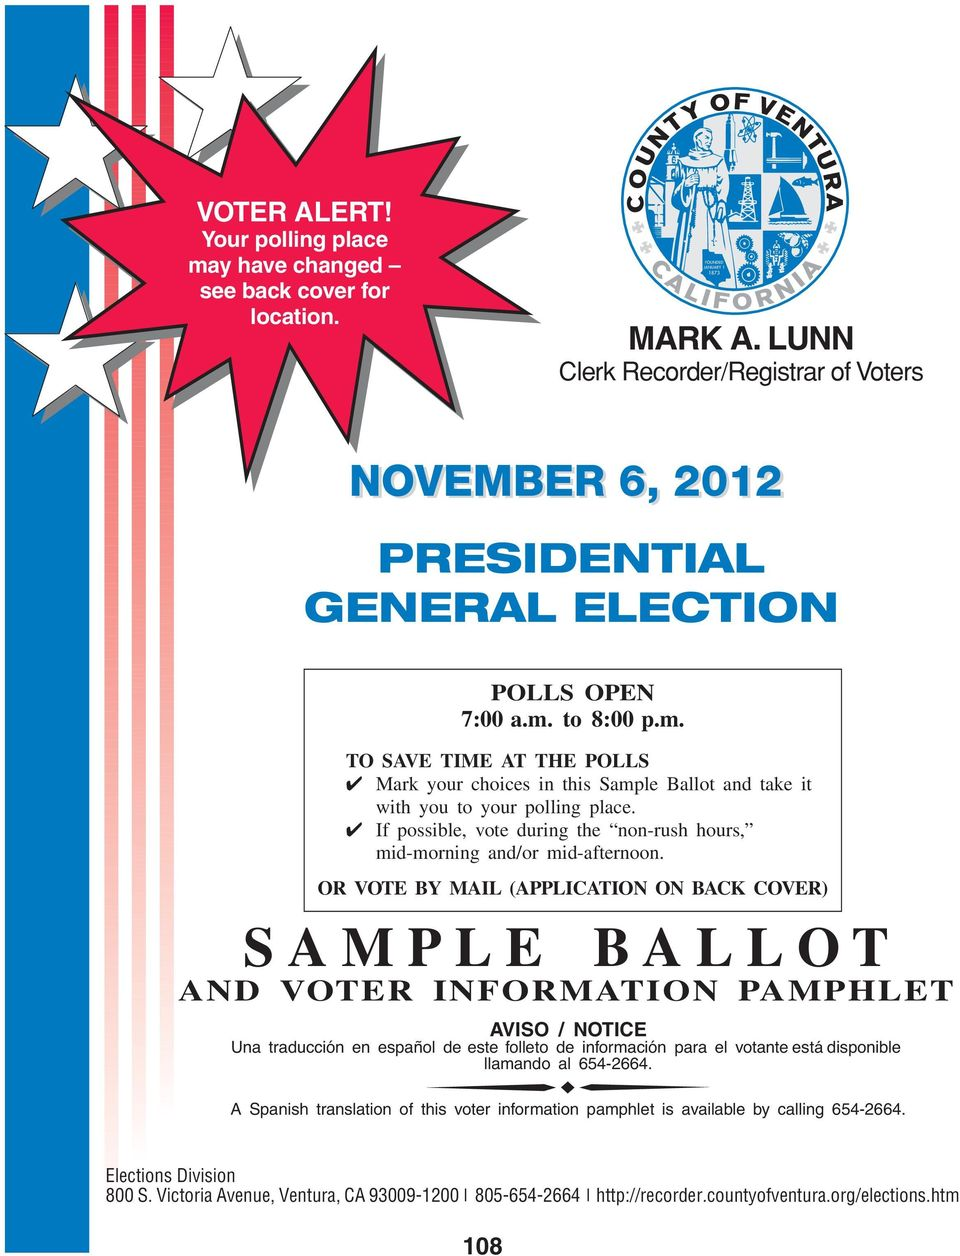 to 8:00 p.m. TO SAVE TIME AT THE POLLS Mark your choices in this Sample Ballot and take it with you to your polling place.